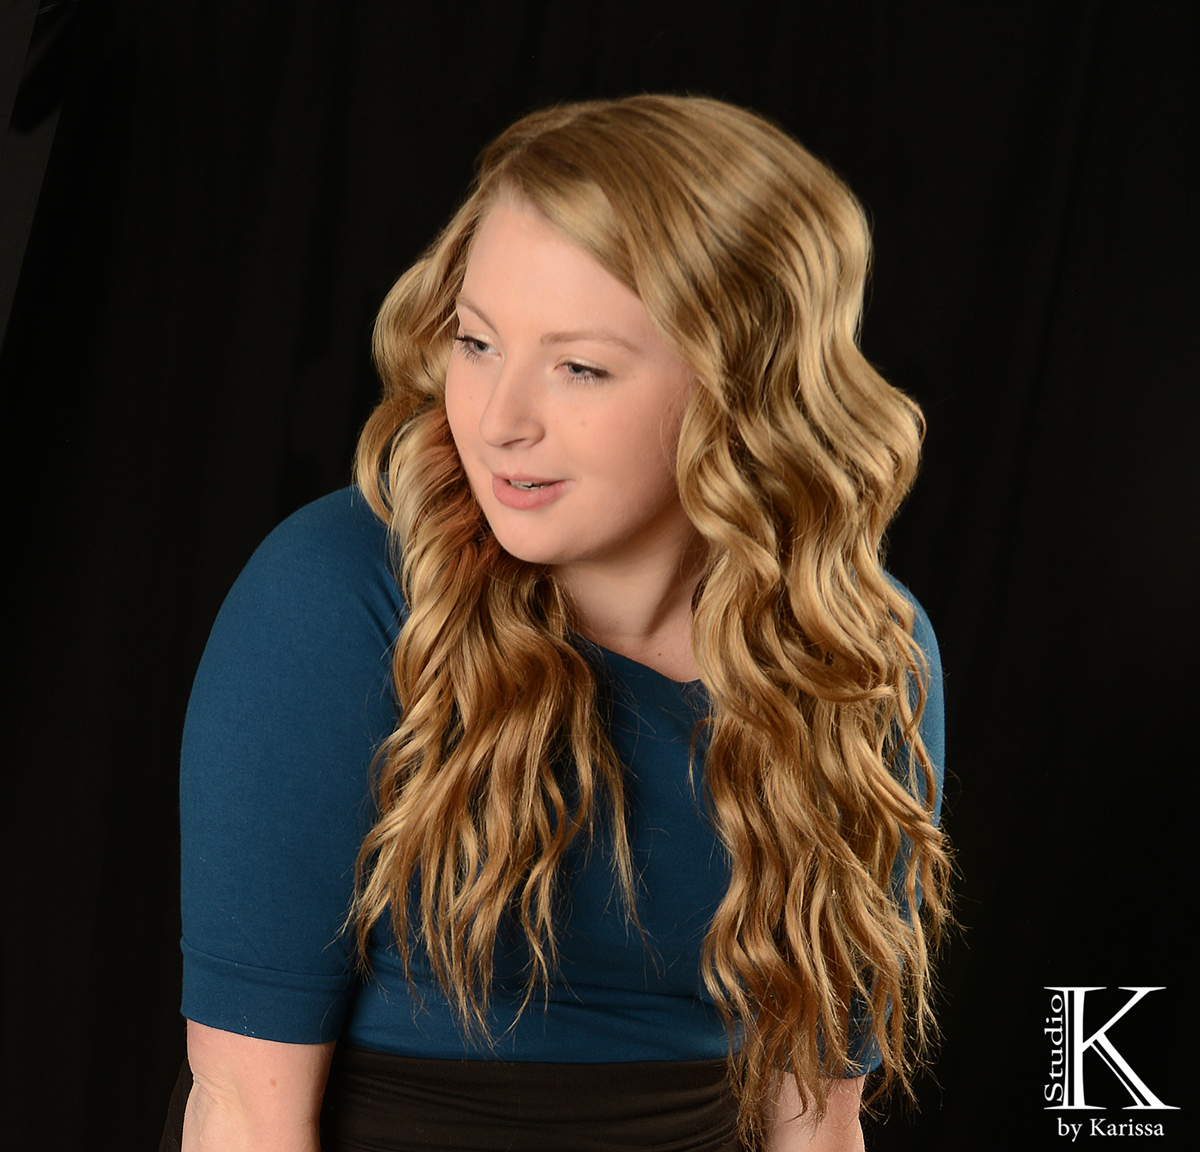 Keely was dancing and her hair looks amazing in this picture!